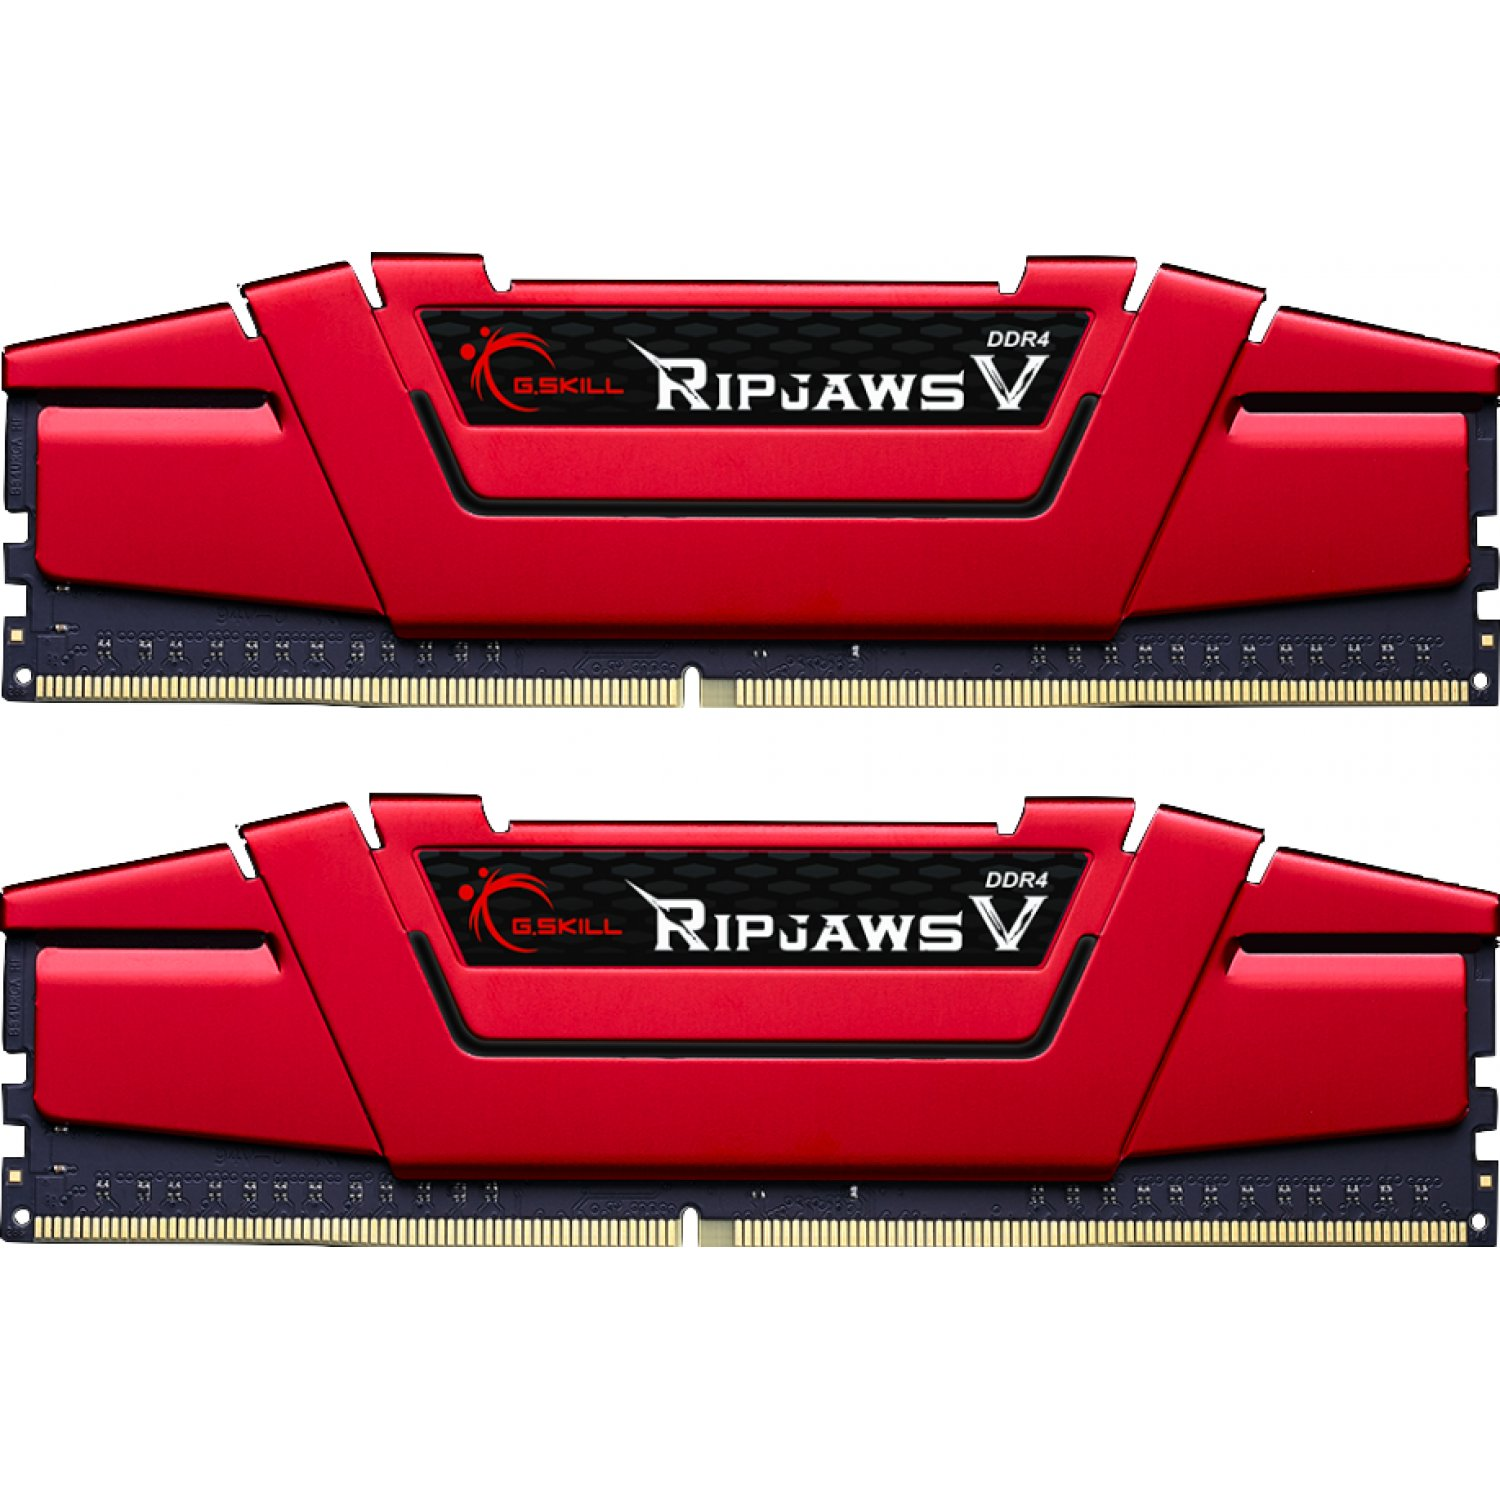 Mémoire G.Skill RipJaws 5 Series kit 2x 8 Go DDR4 2666 MHz CL15, informatique ile de la Réunion 974